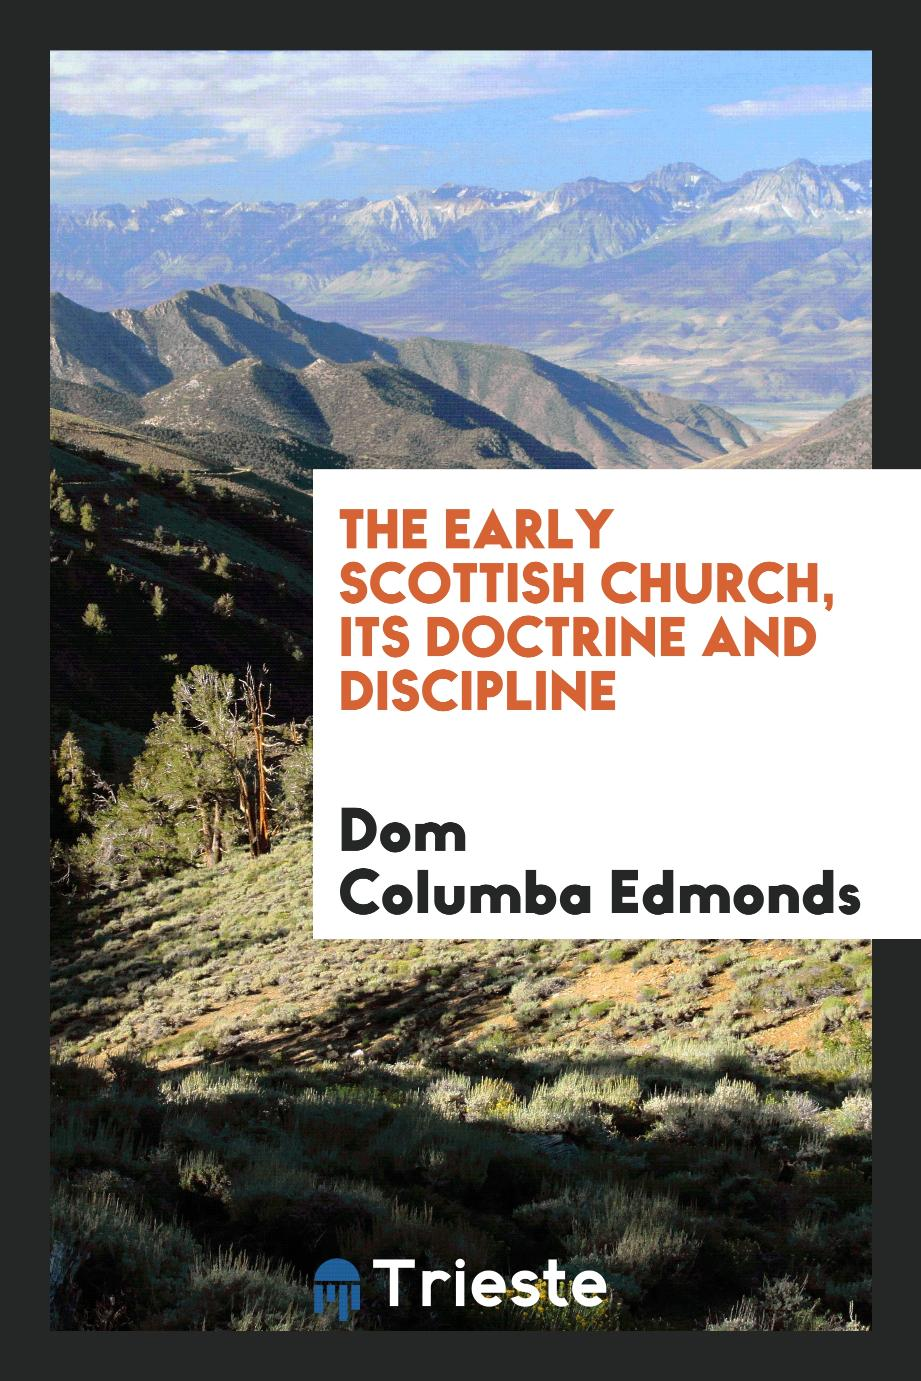 The Early Scottish Church, Its Doctrine and Discipline